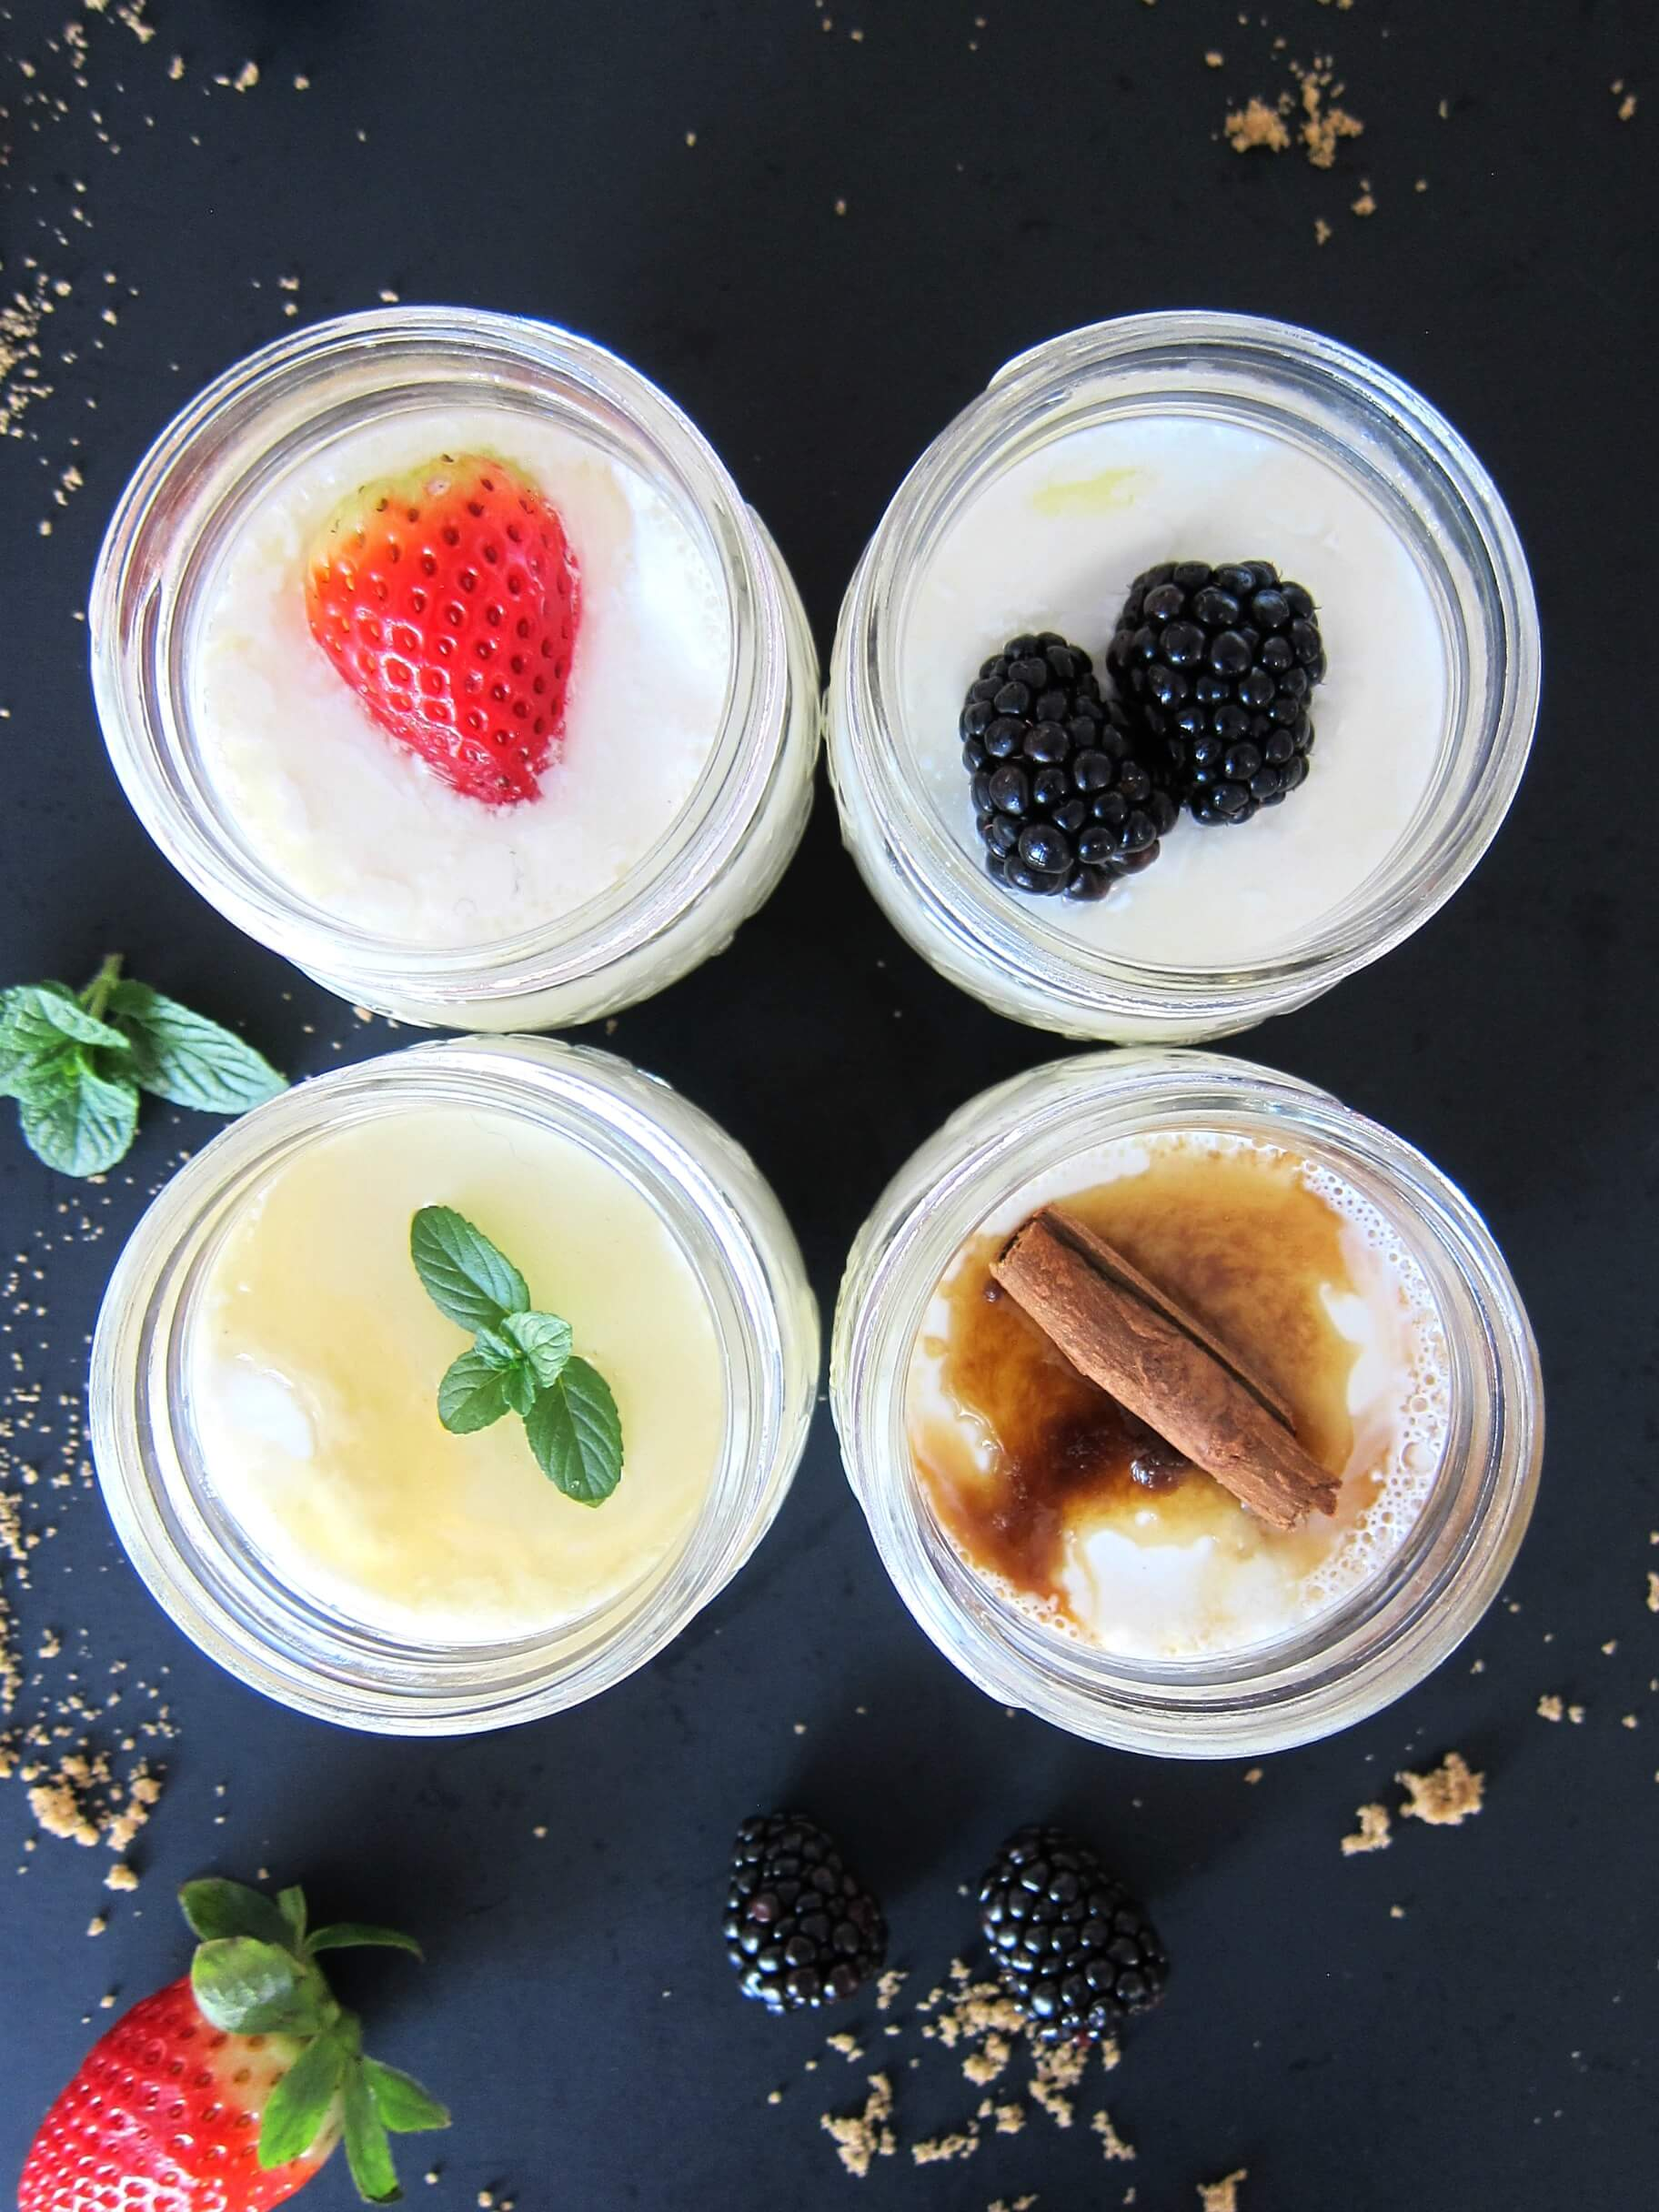 Instant Pot Yogurt - individual mason jars of yogurt: strawberry, honey mint, cinnamon brown sugar, blackberries